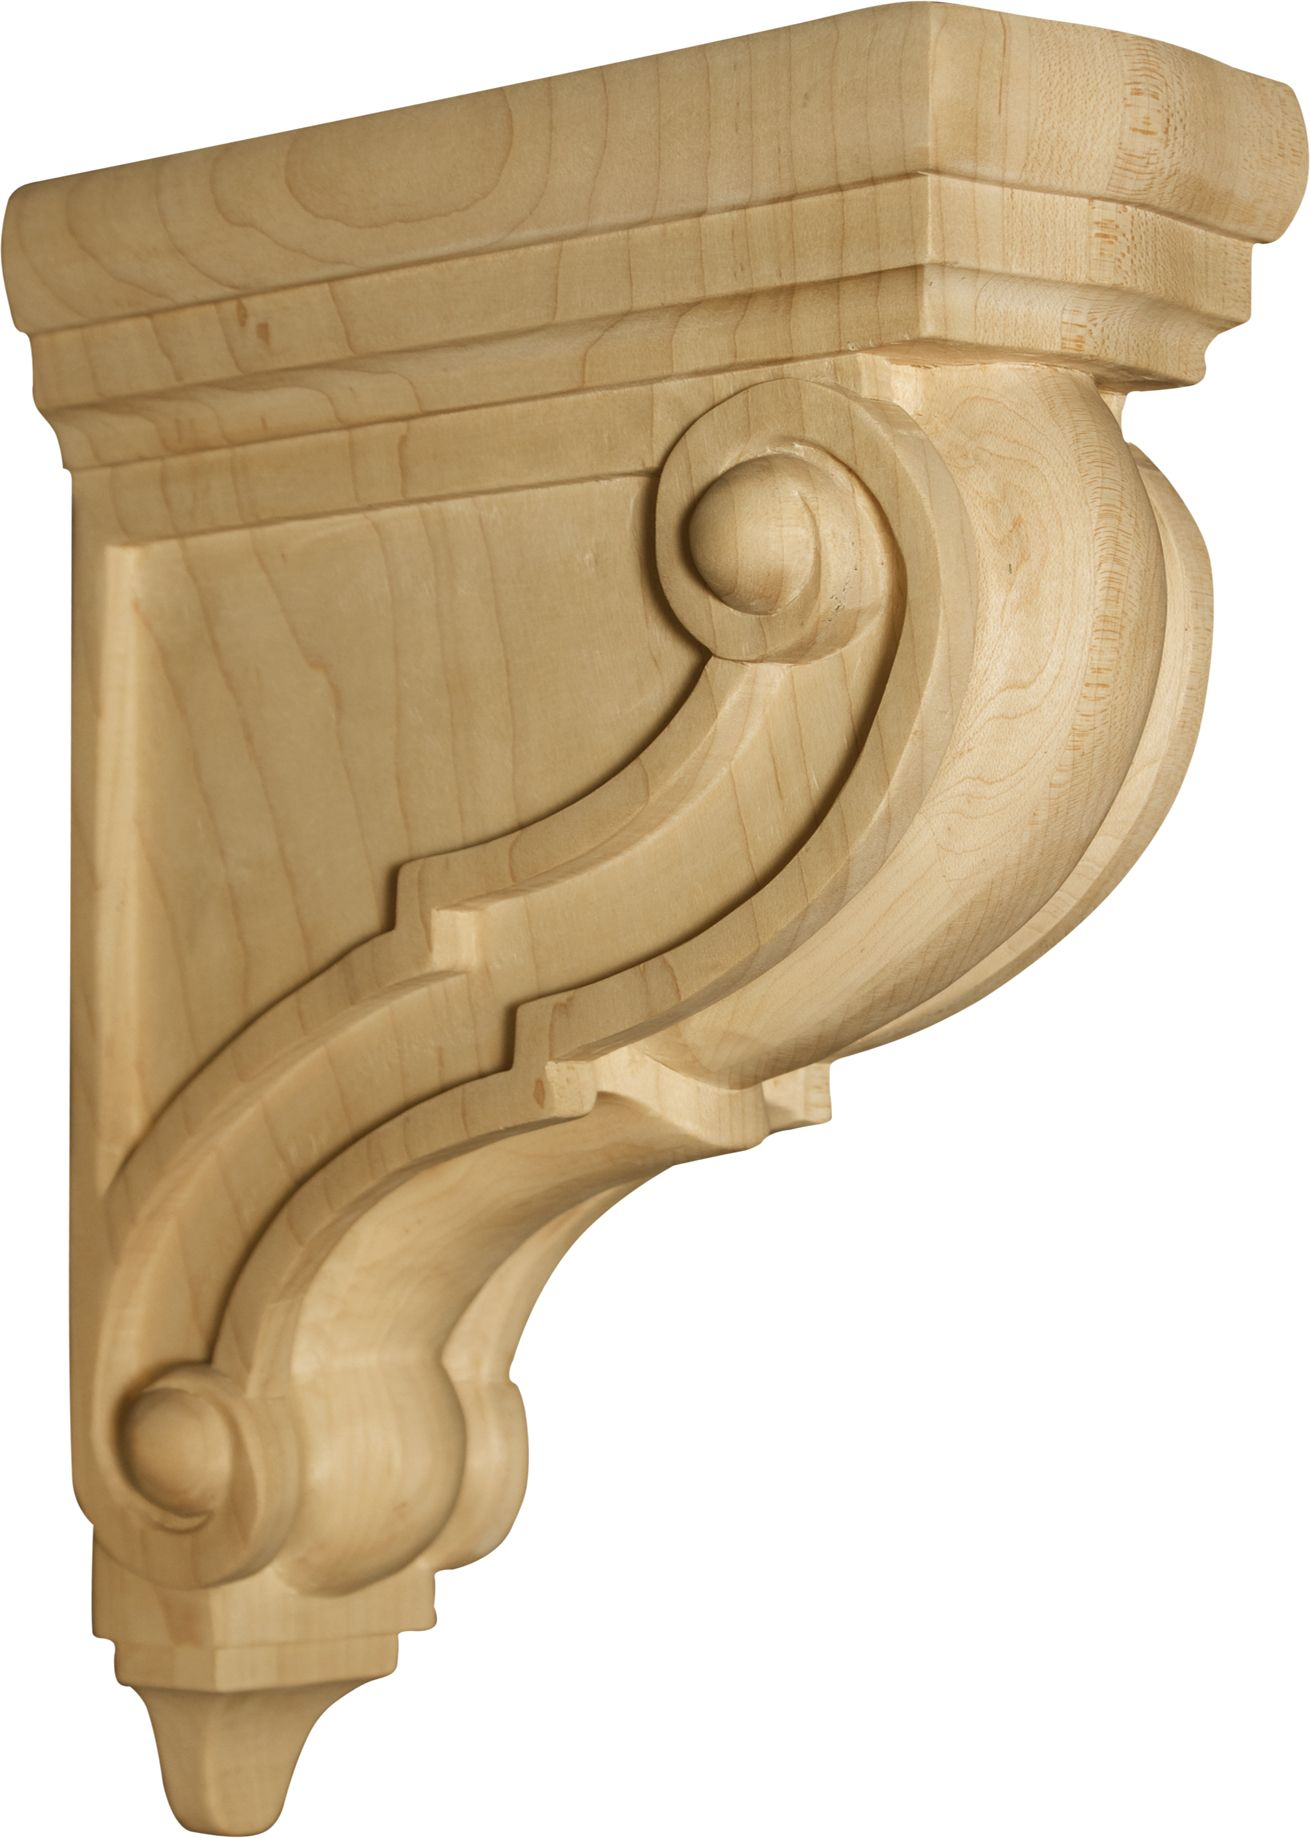 decorative wood corbels and brackets: solid, decorative wooden